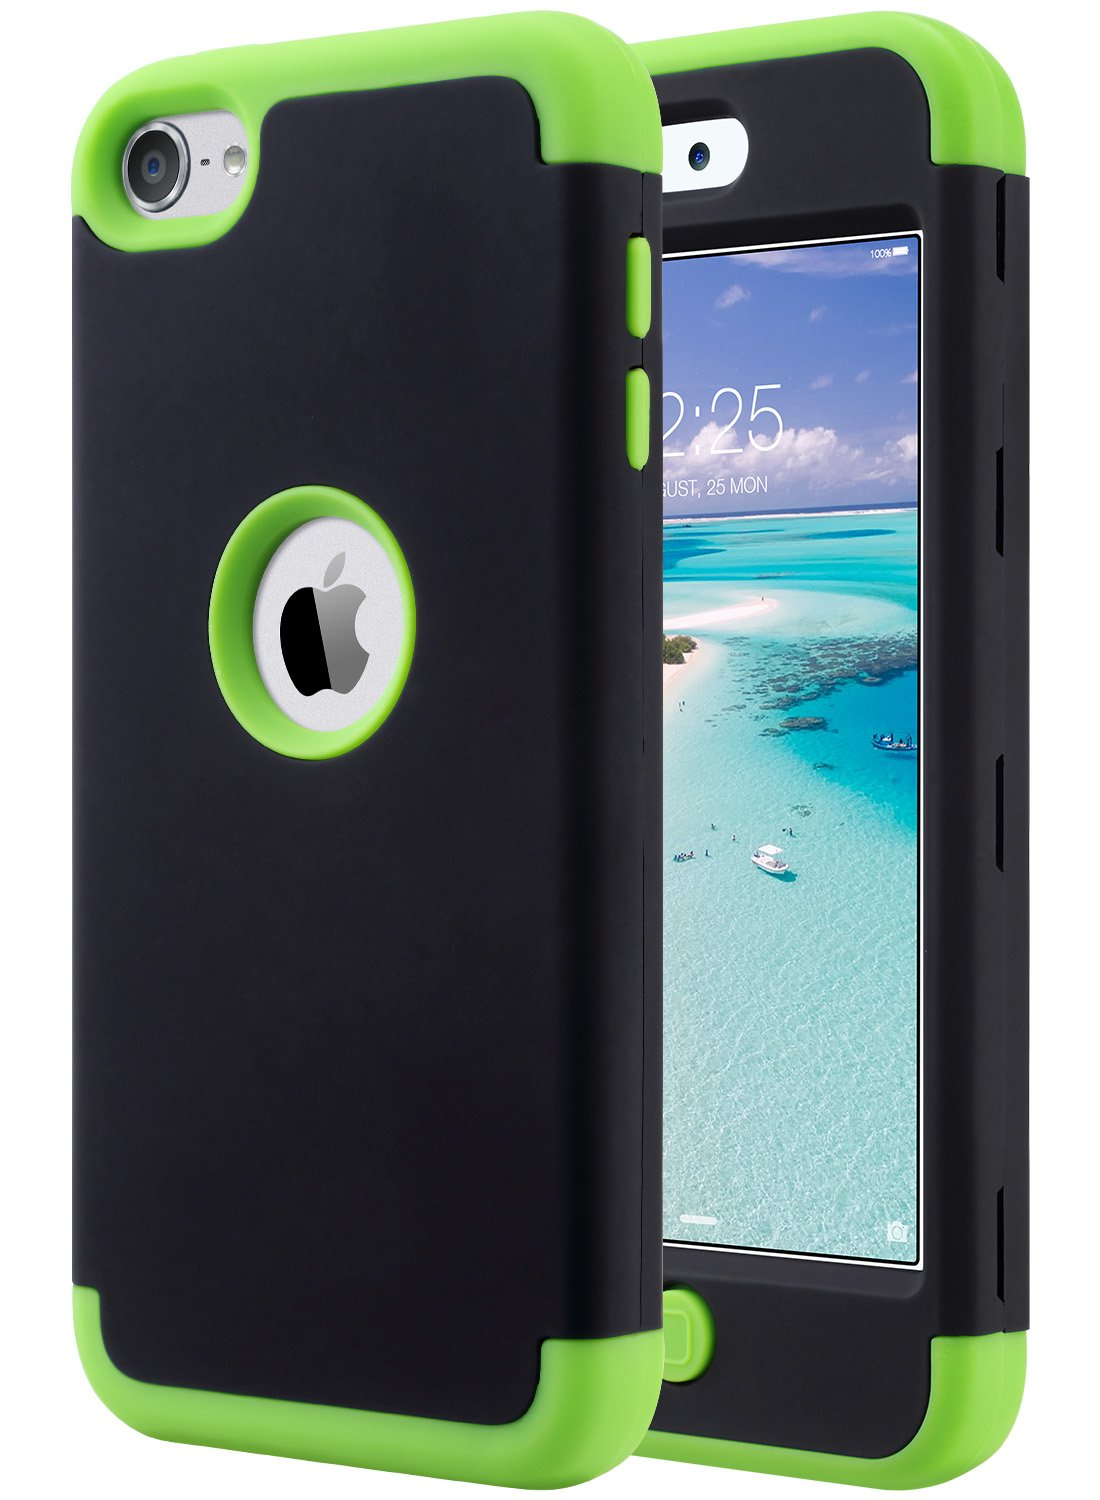 Funda Para Apple iPod Touch 5/6/7 Generacion (negra Y Verde)